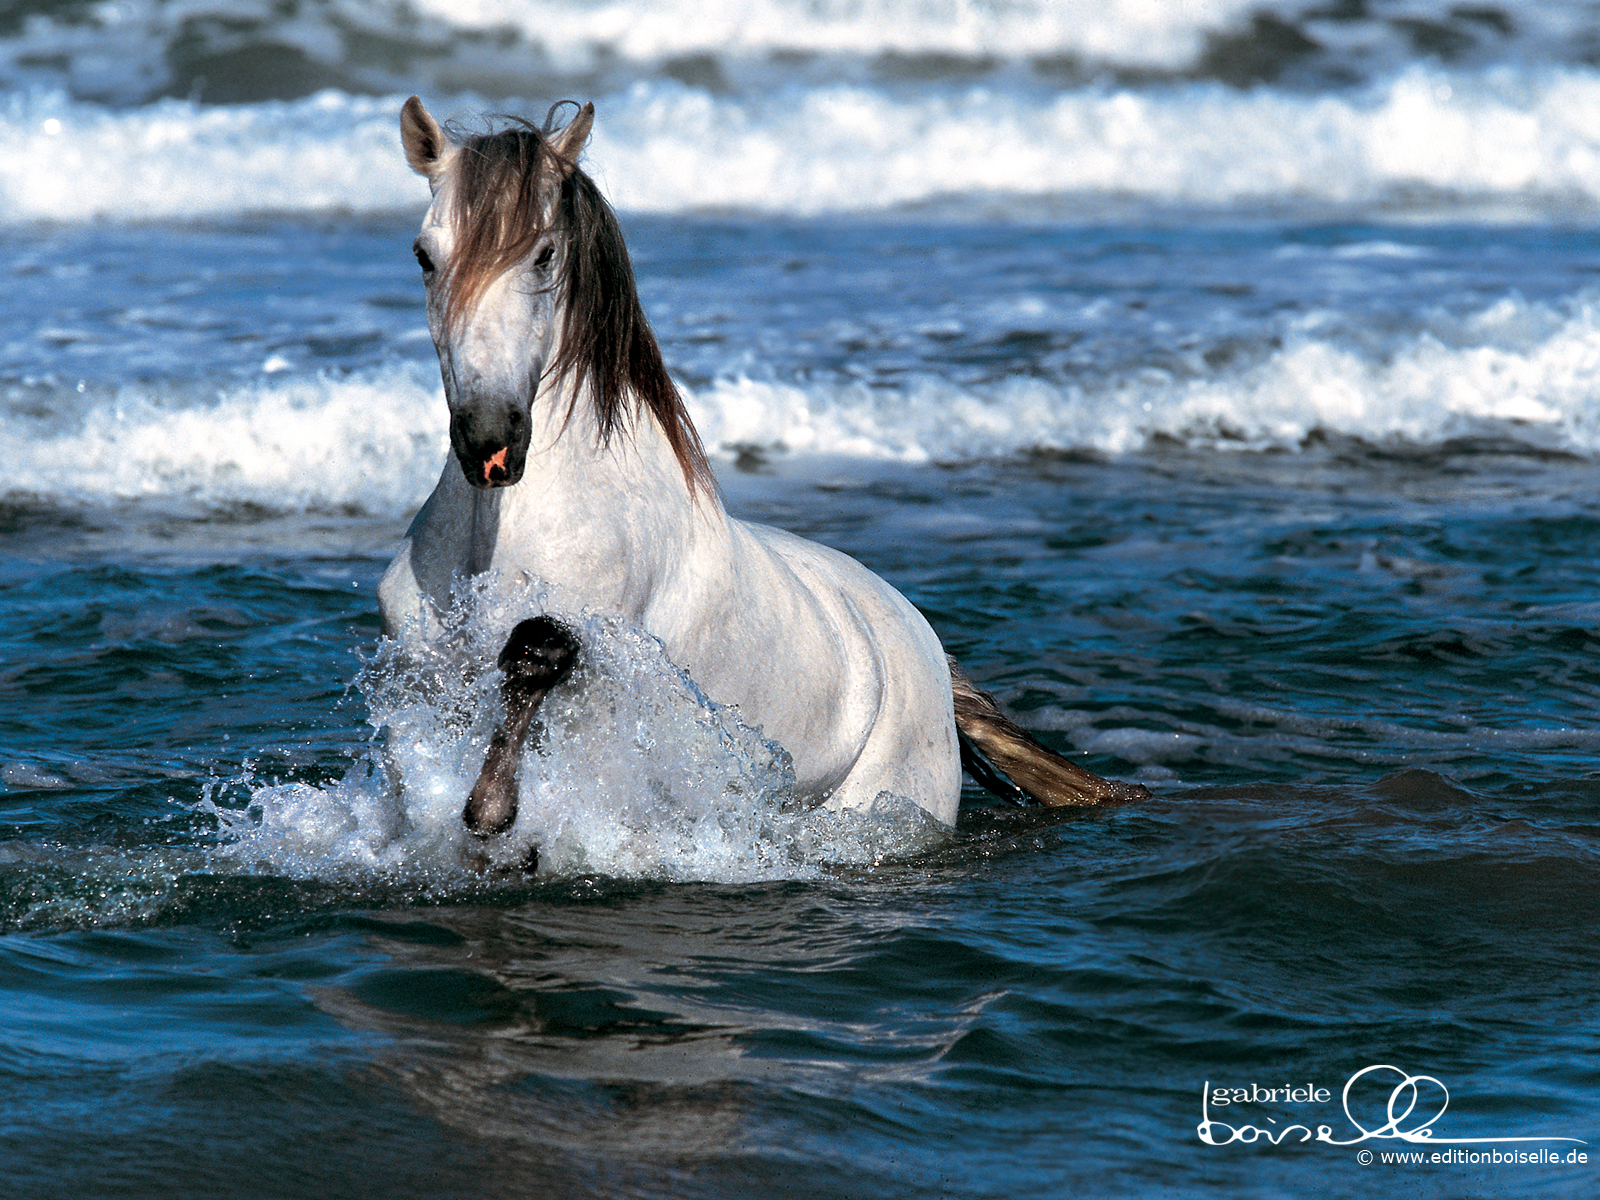 Free horse wallpaper - Free horse backgrounds ...